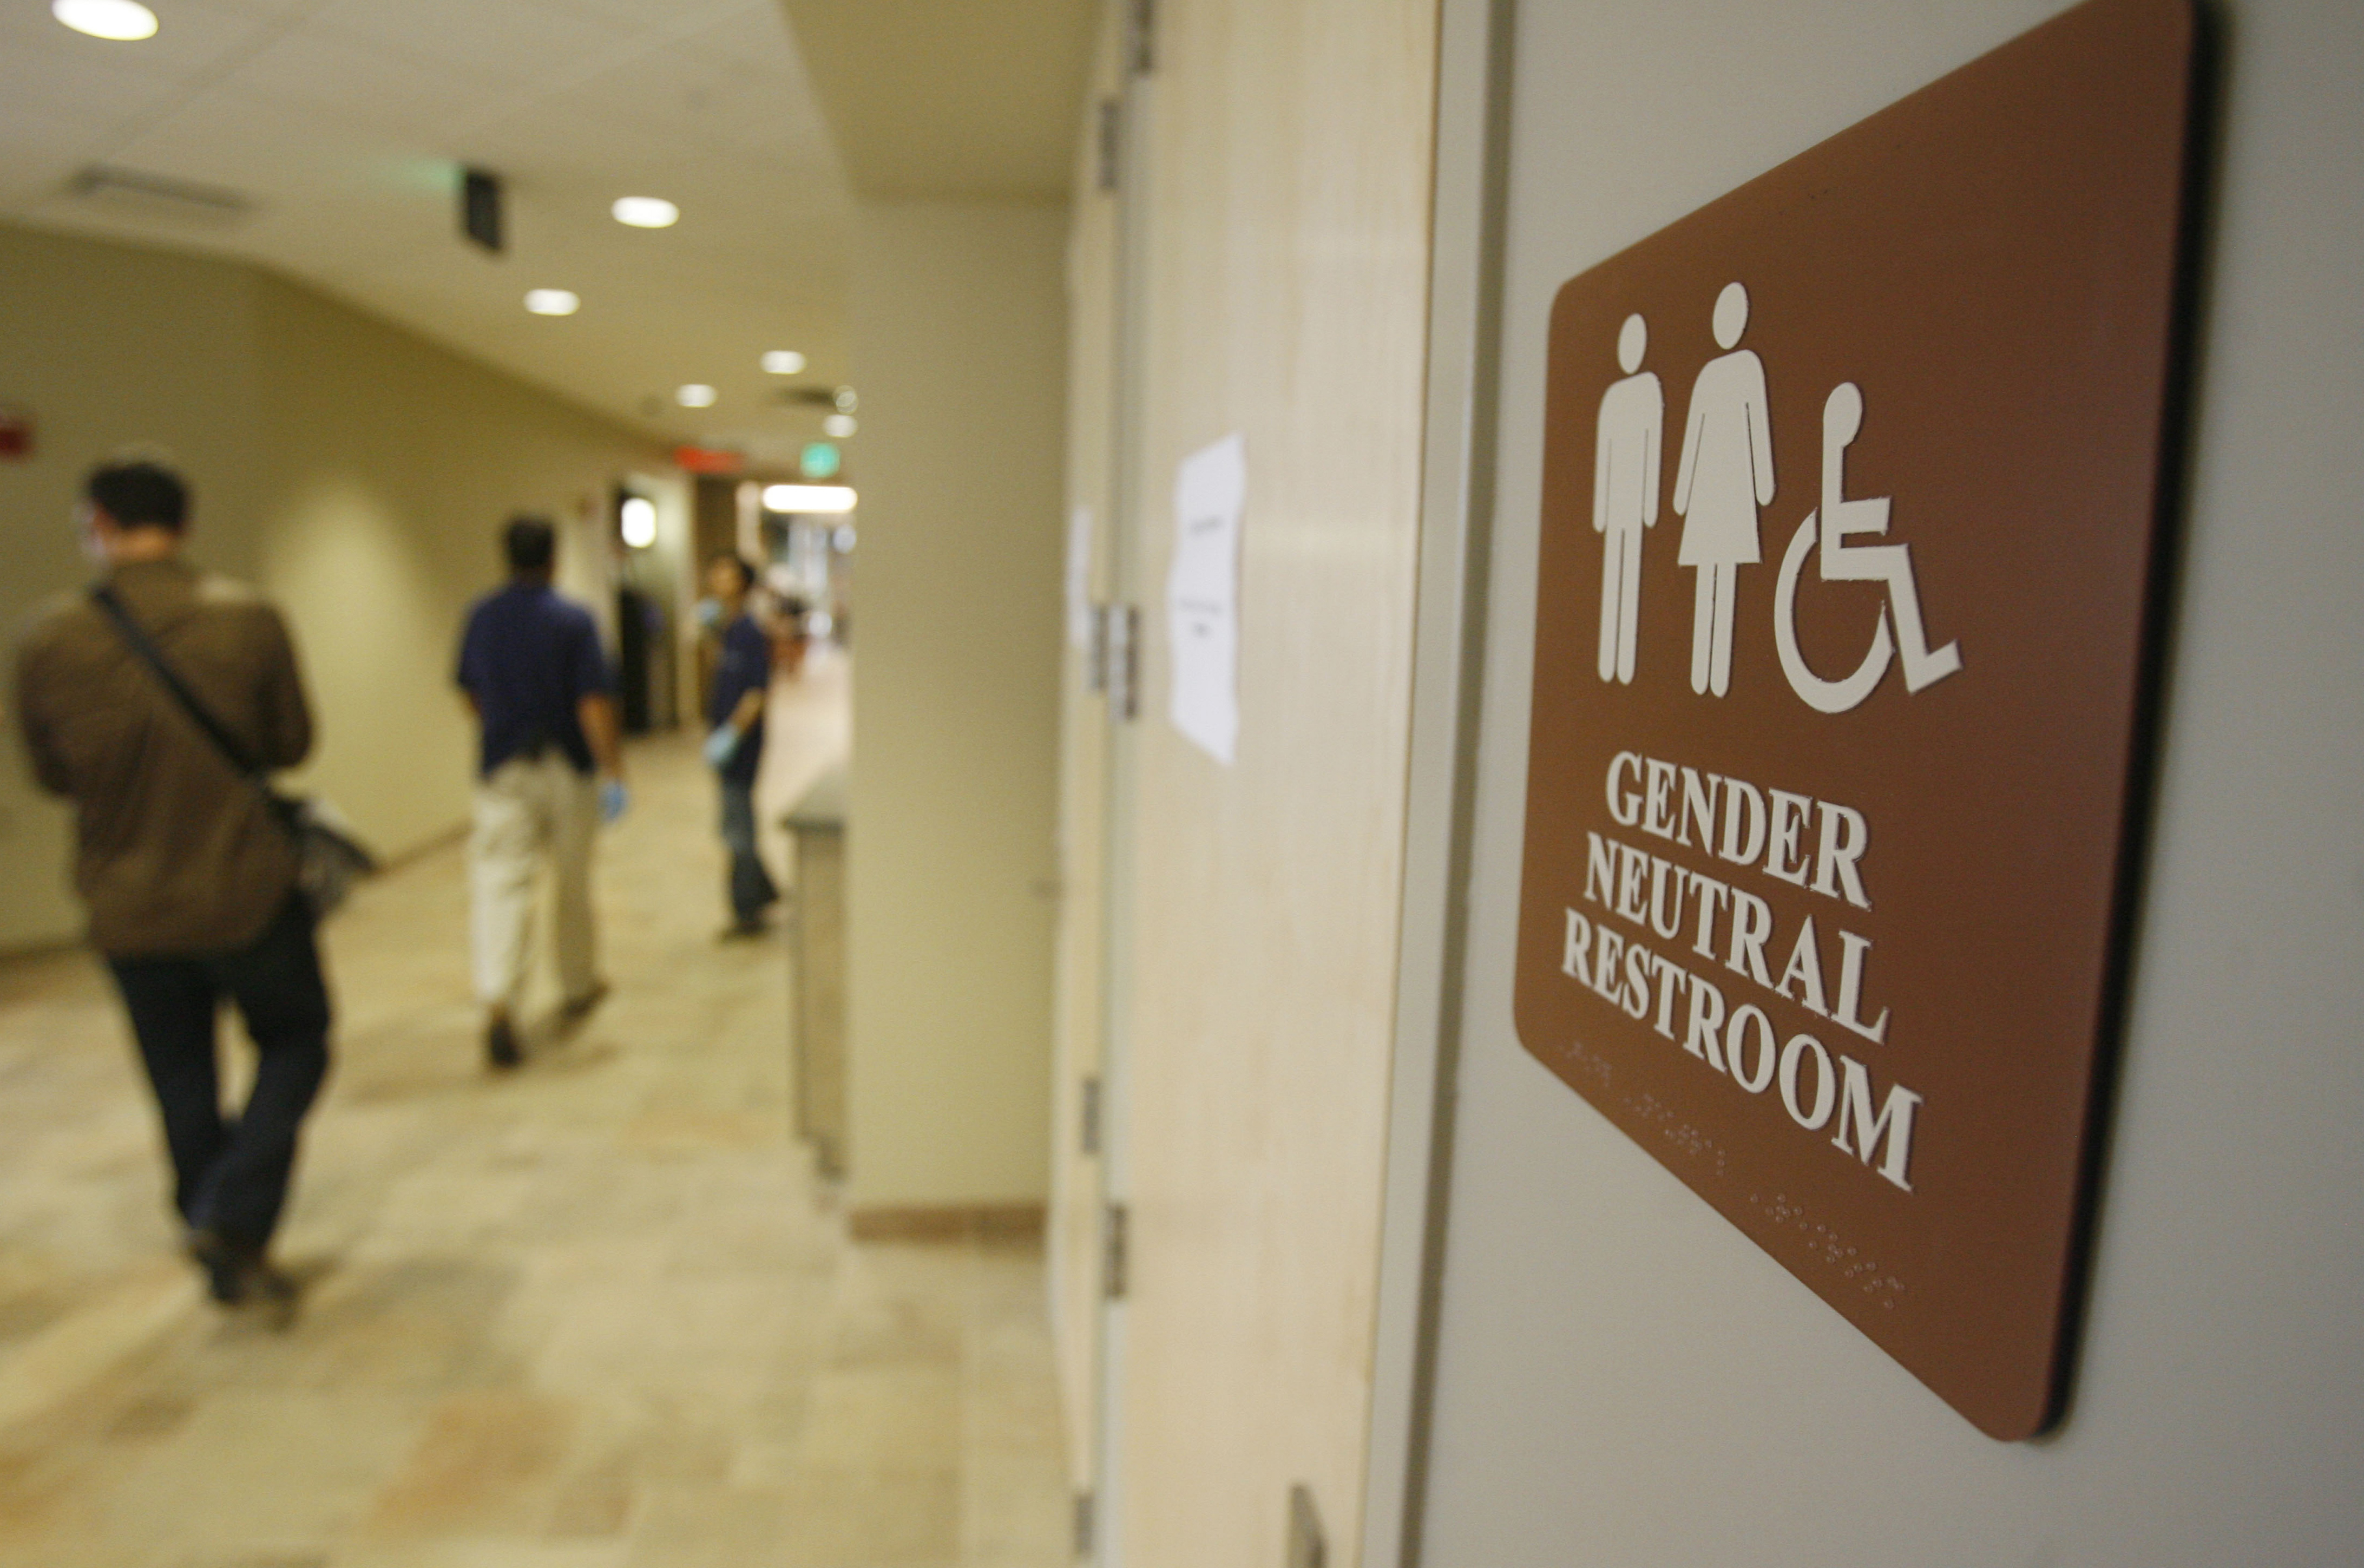 Houston bathroom bill rejected by voters Washington Times